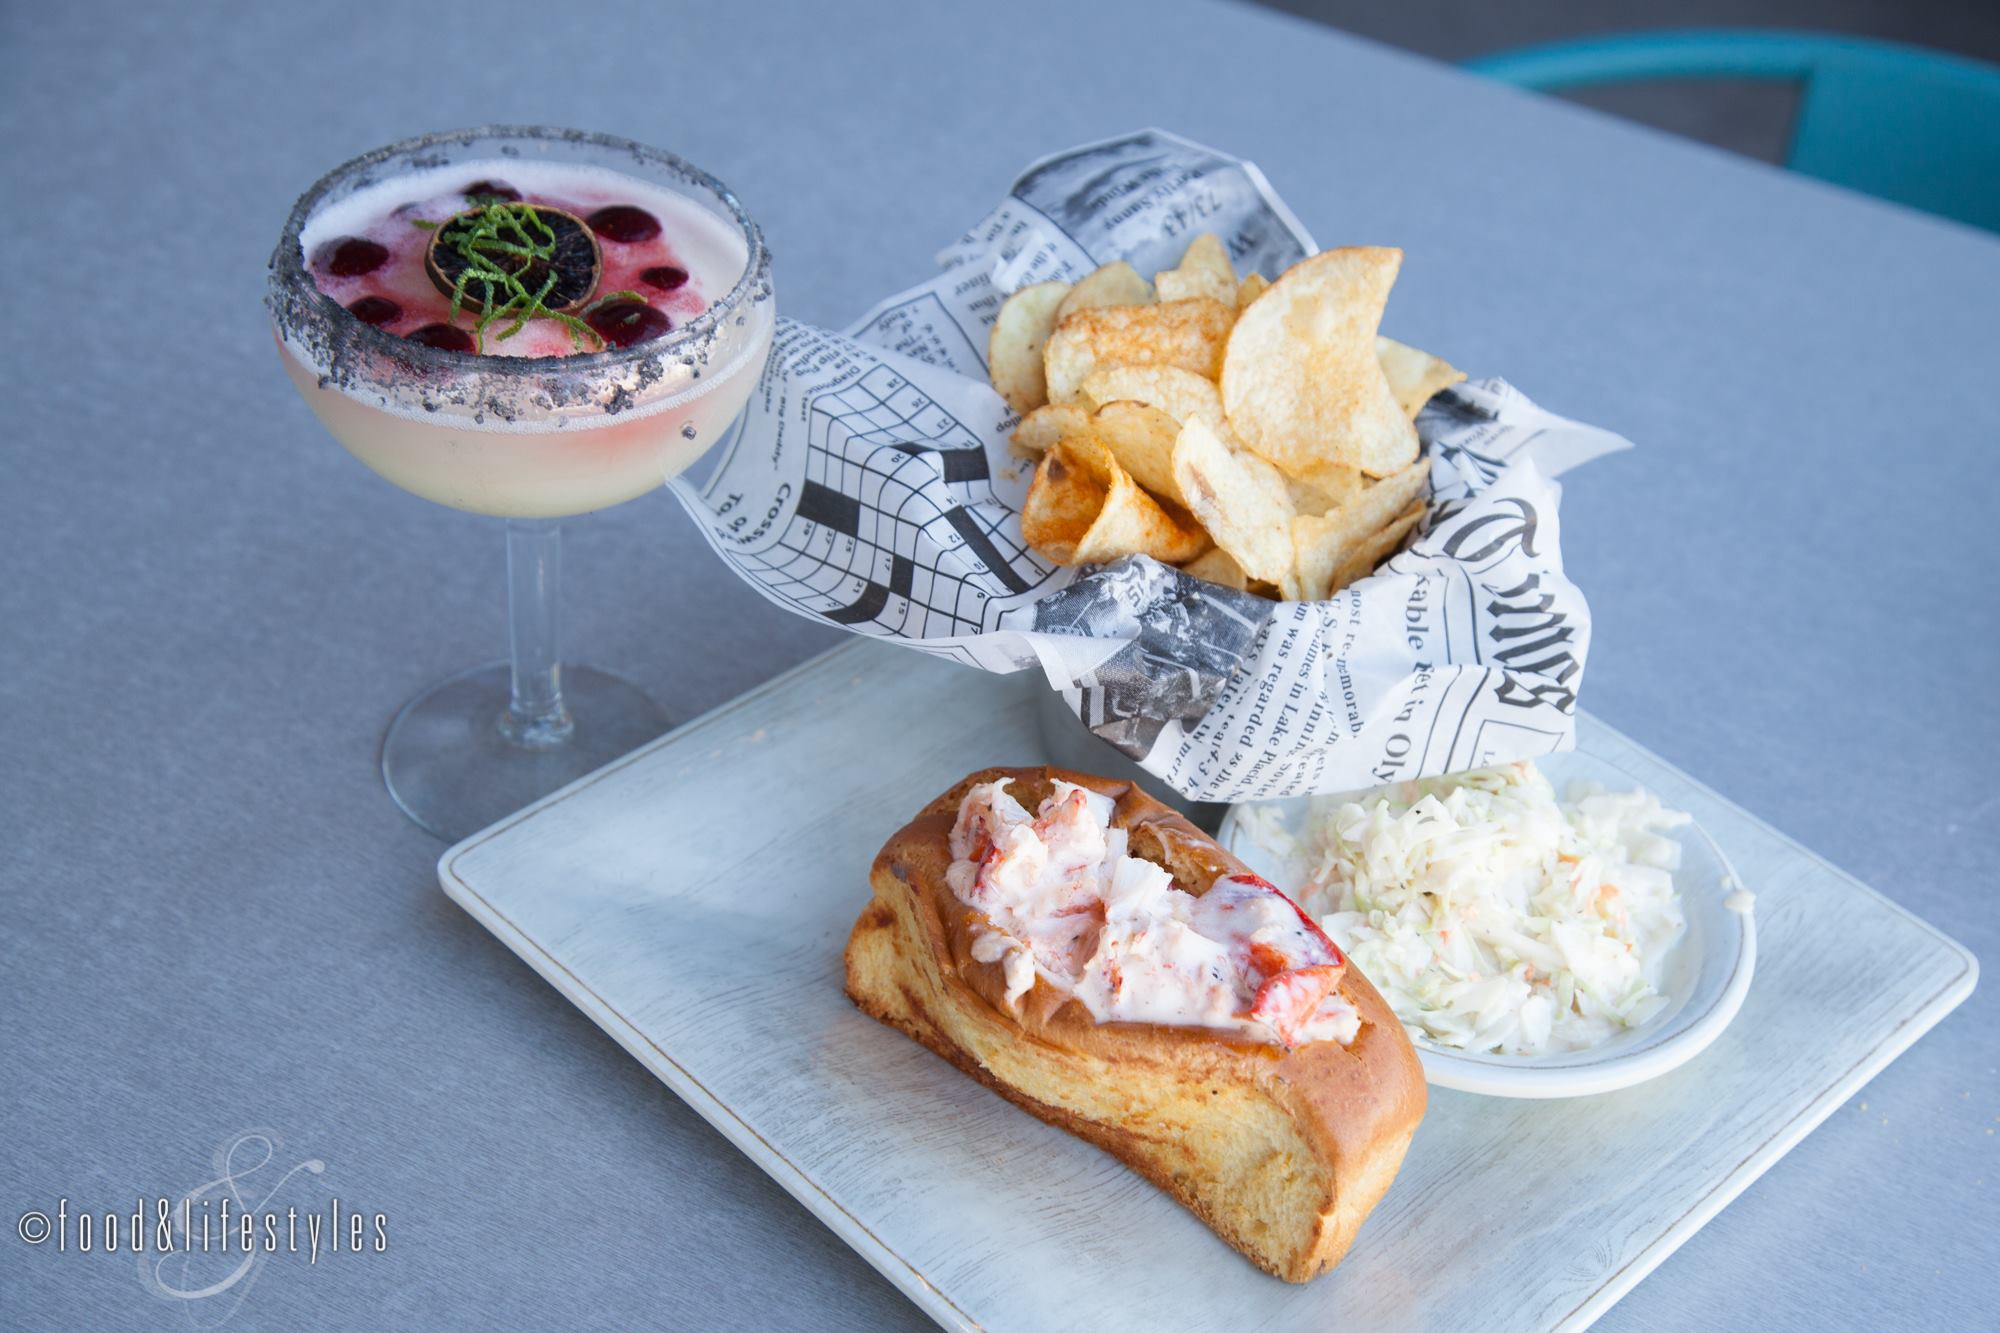 Riptide Margarita and the Lobster Roll